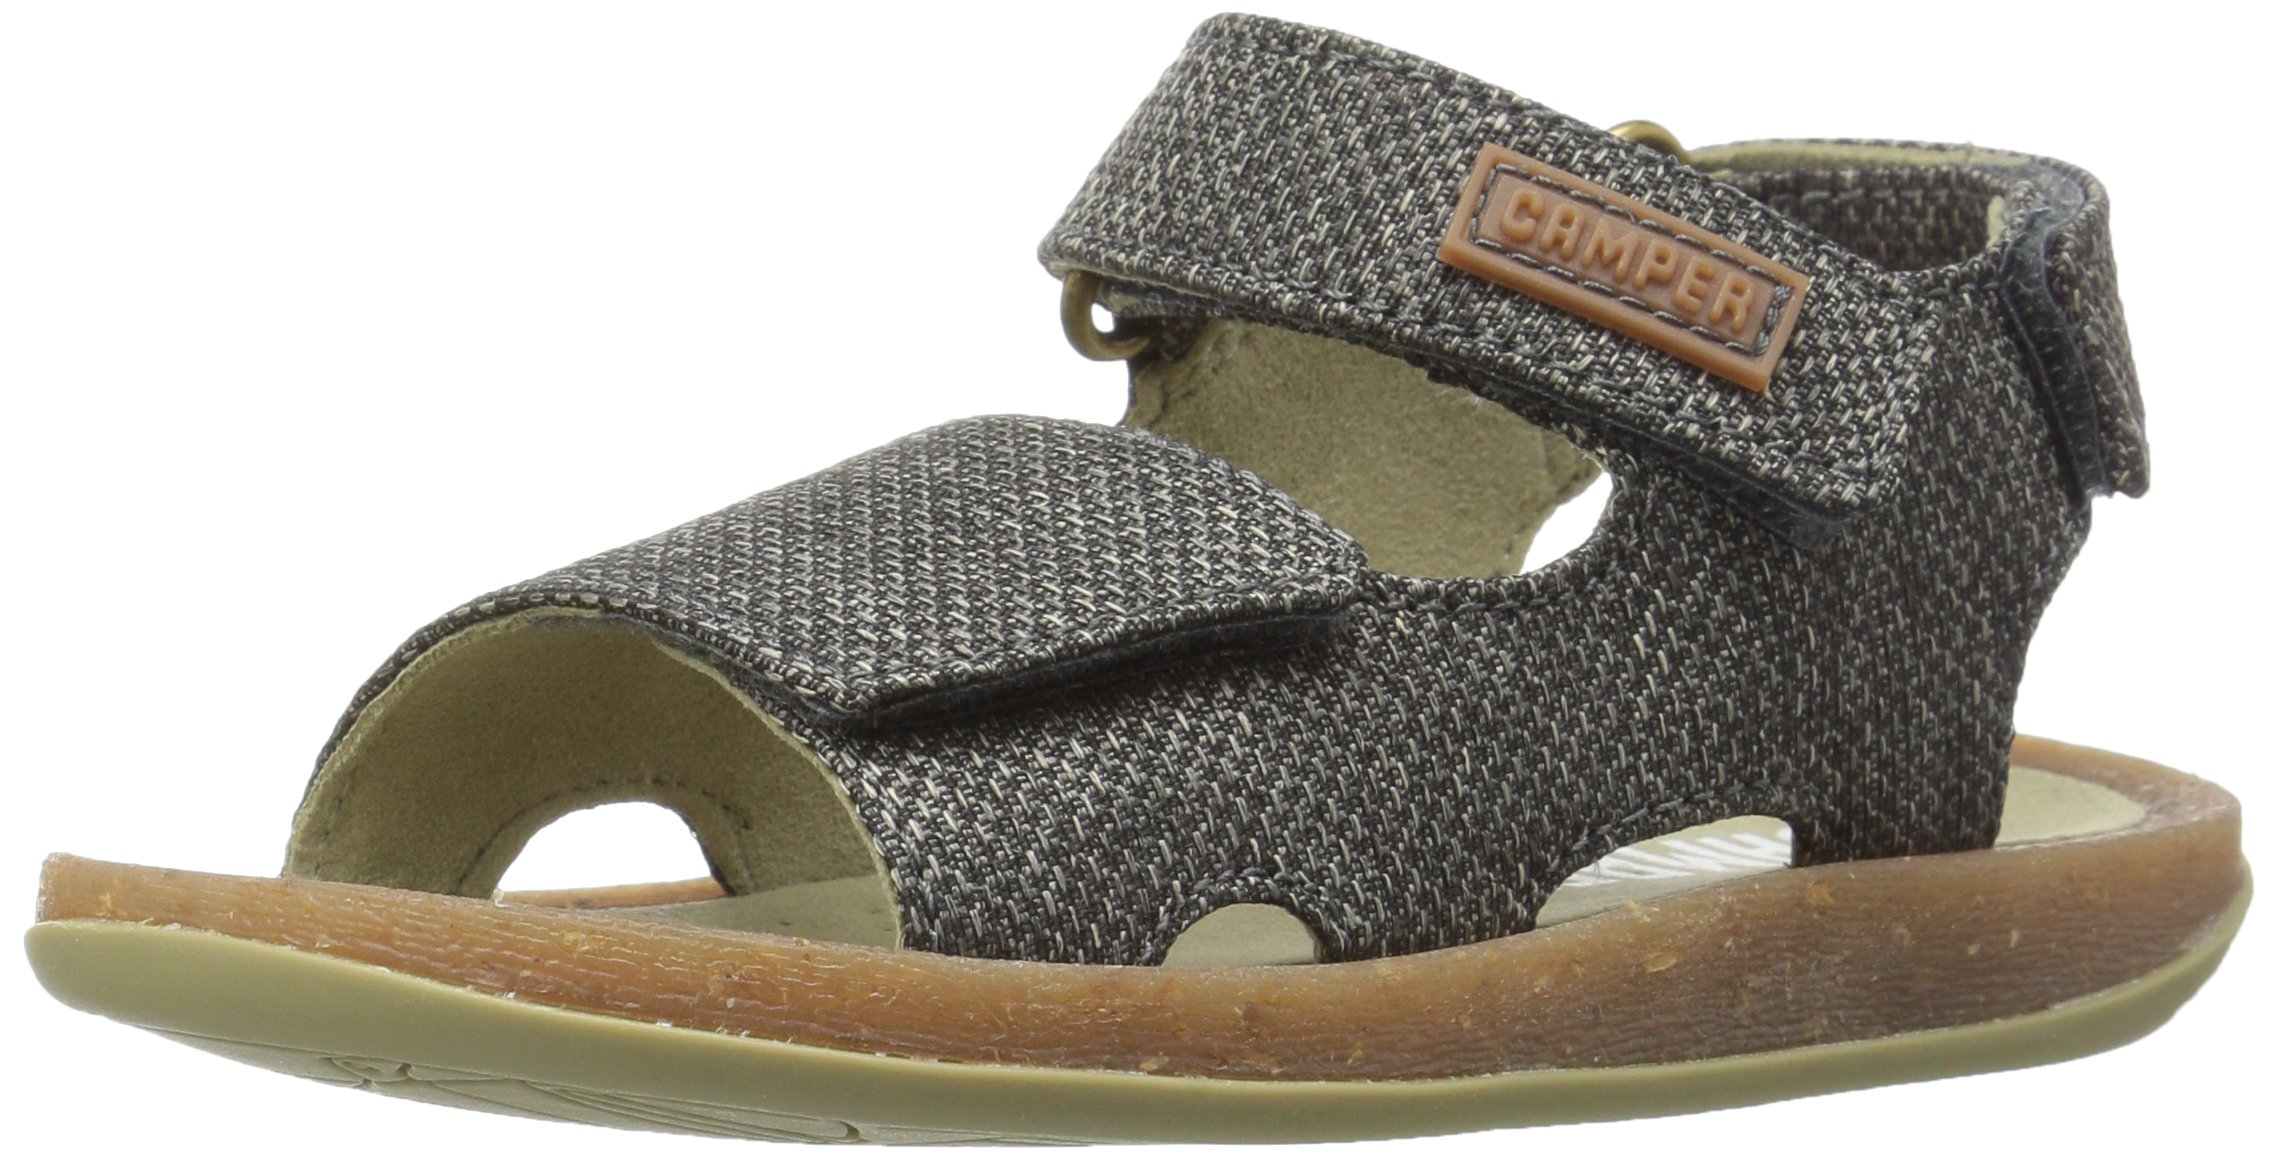 Camper Kids Kids' Bicho K800075 Slip-On, Grey, 32 EU/1 M US Little Kid by Camper